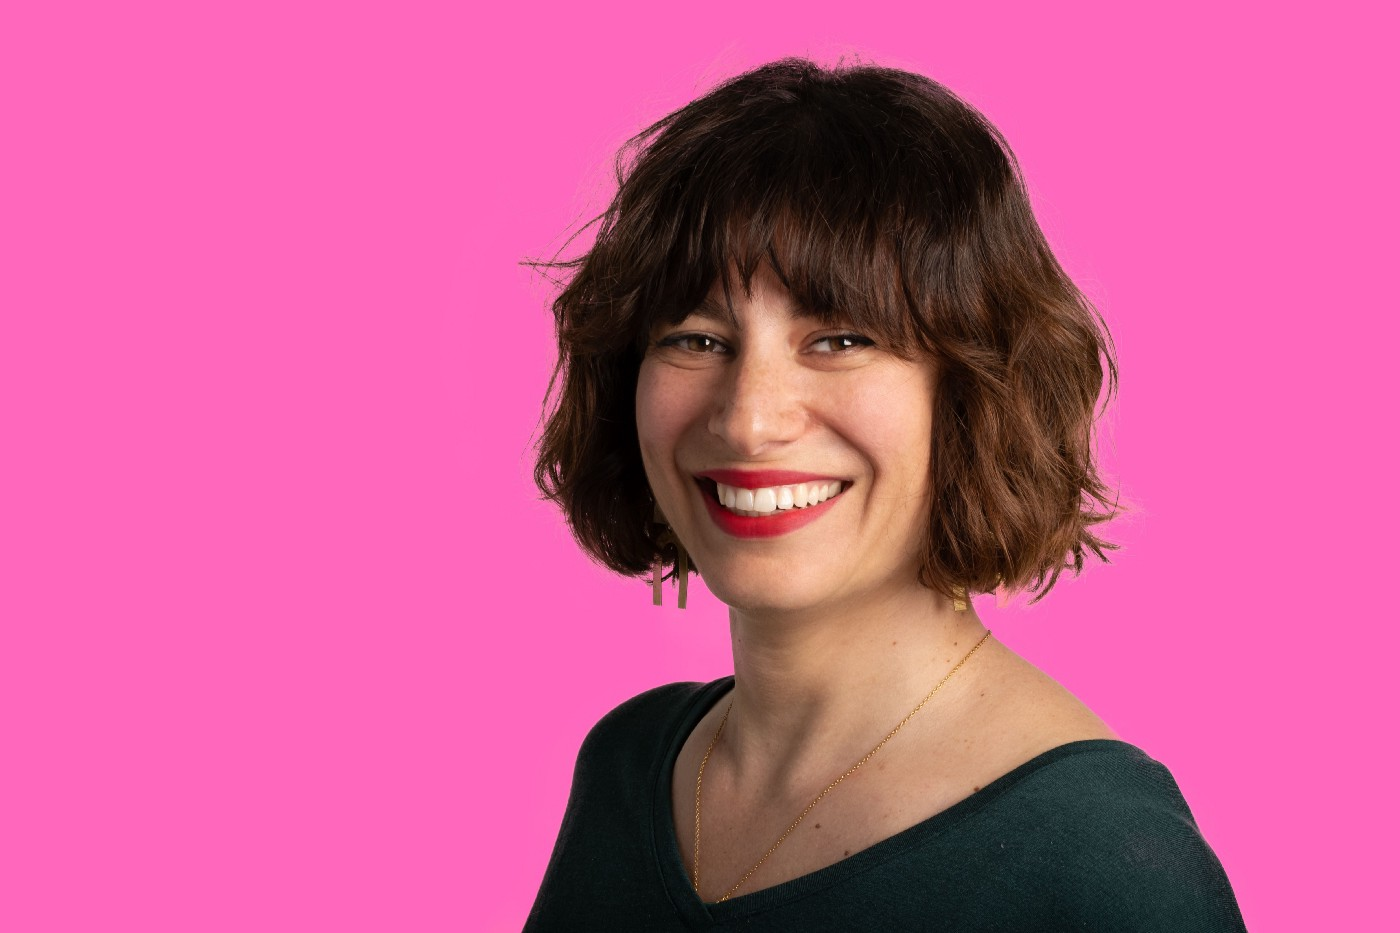 Photo of Anouk against a bright pink background, wearing red lipstick and smiling.